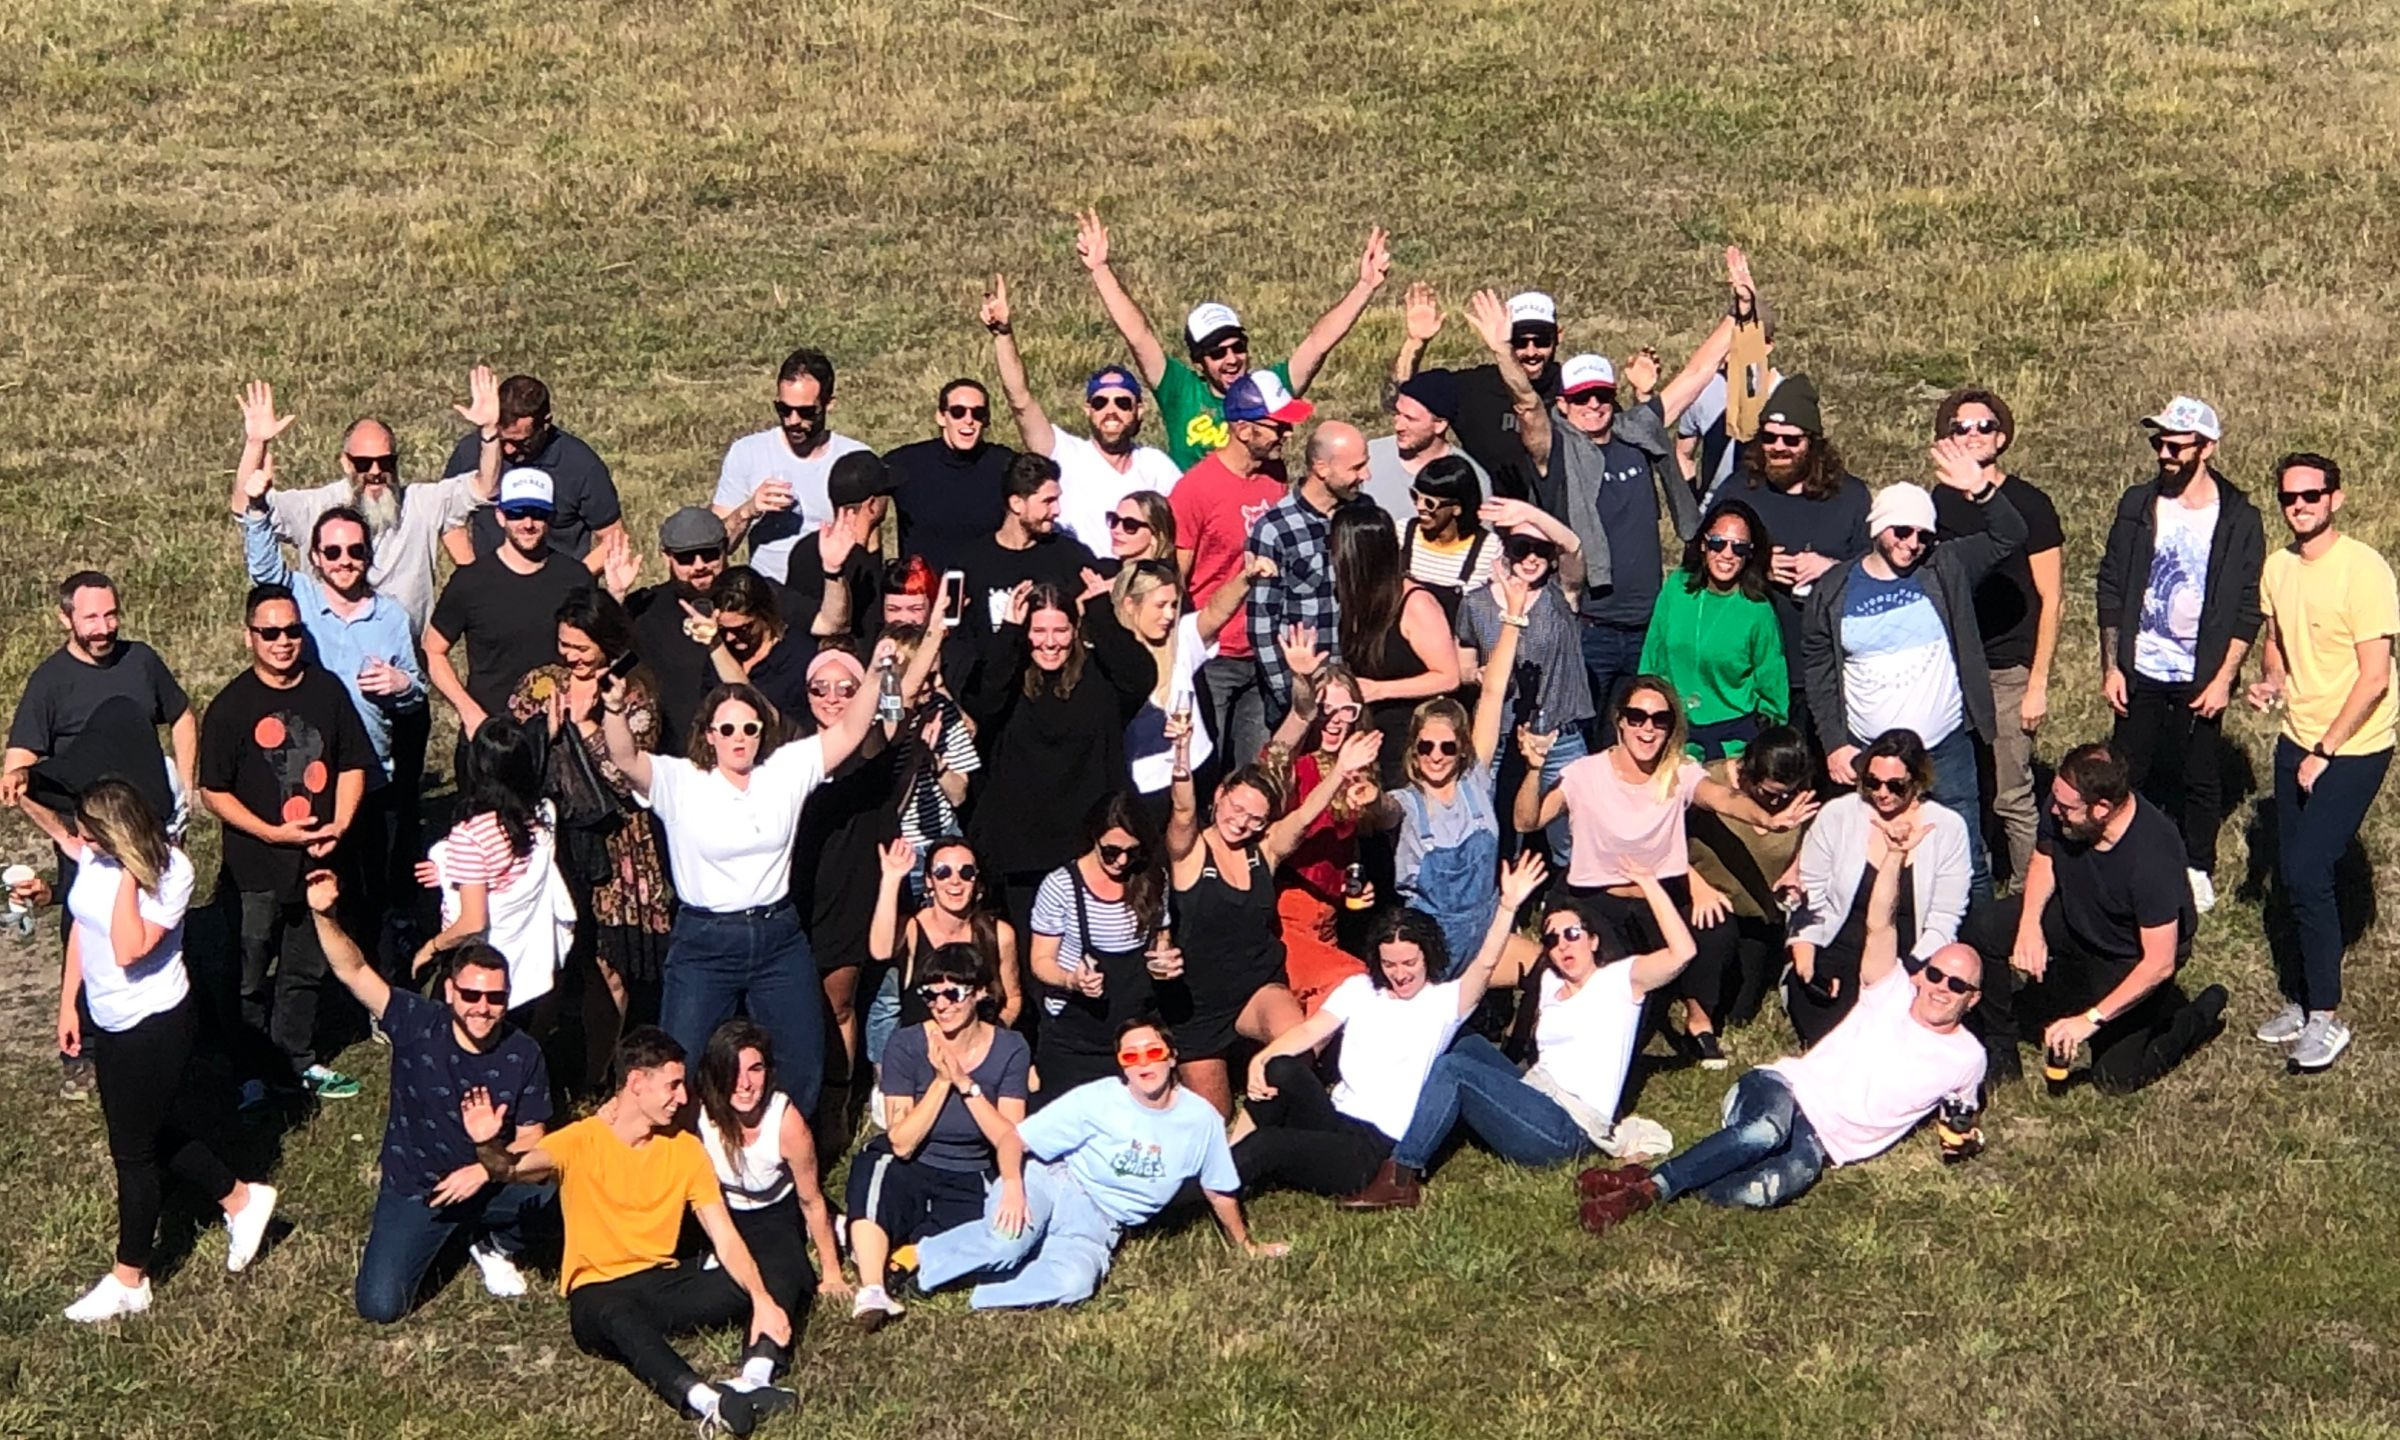 Each year, we all get together for a few days for an Agency Adventure. This photo is from our 2019 adventure to Tasmania.